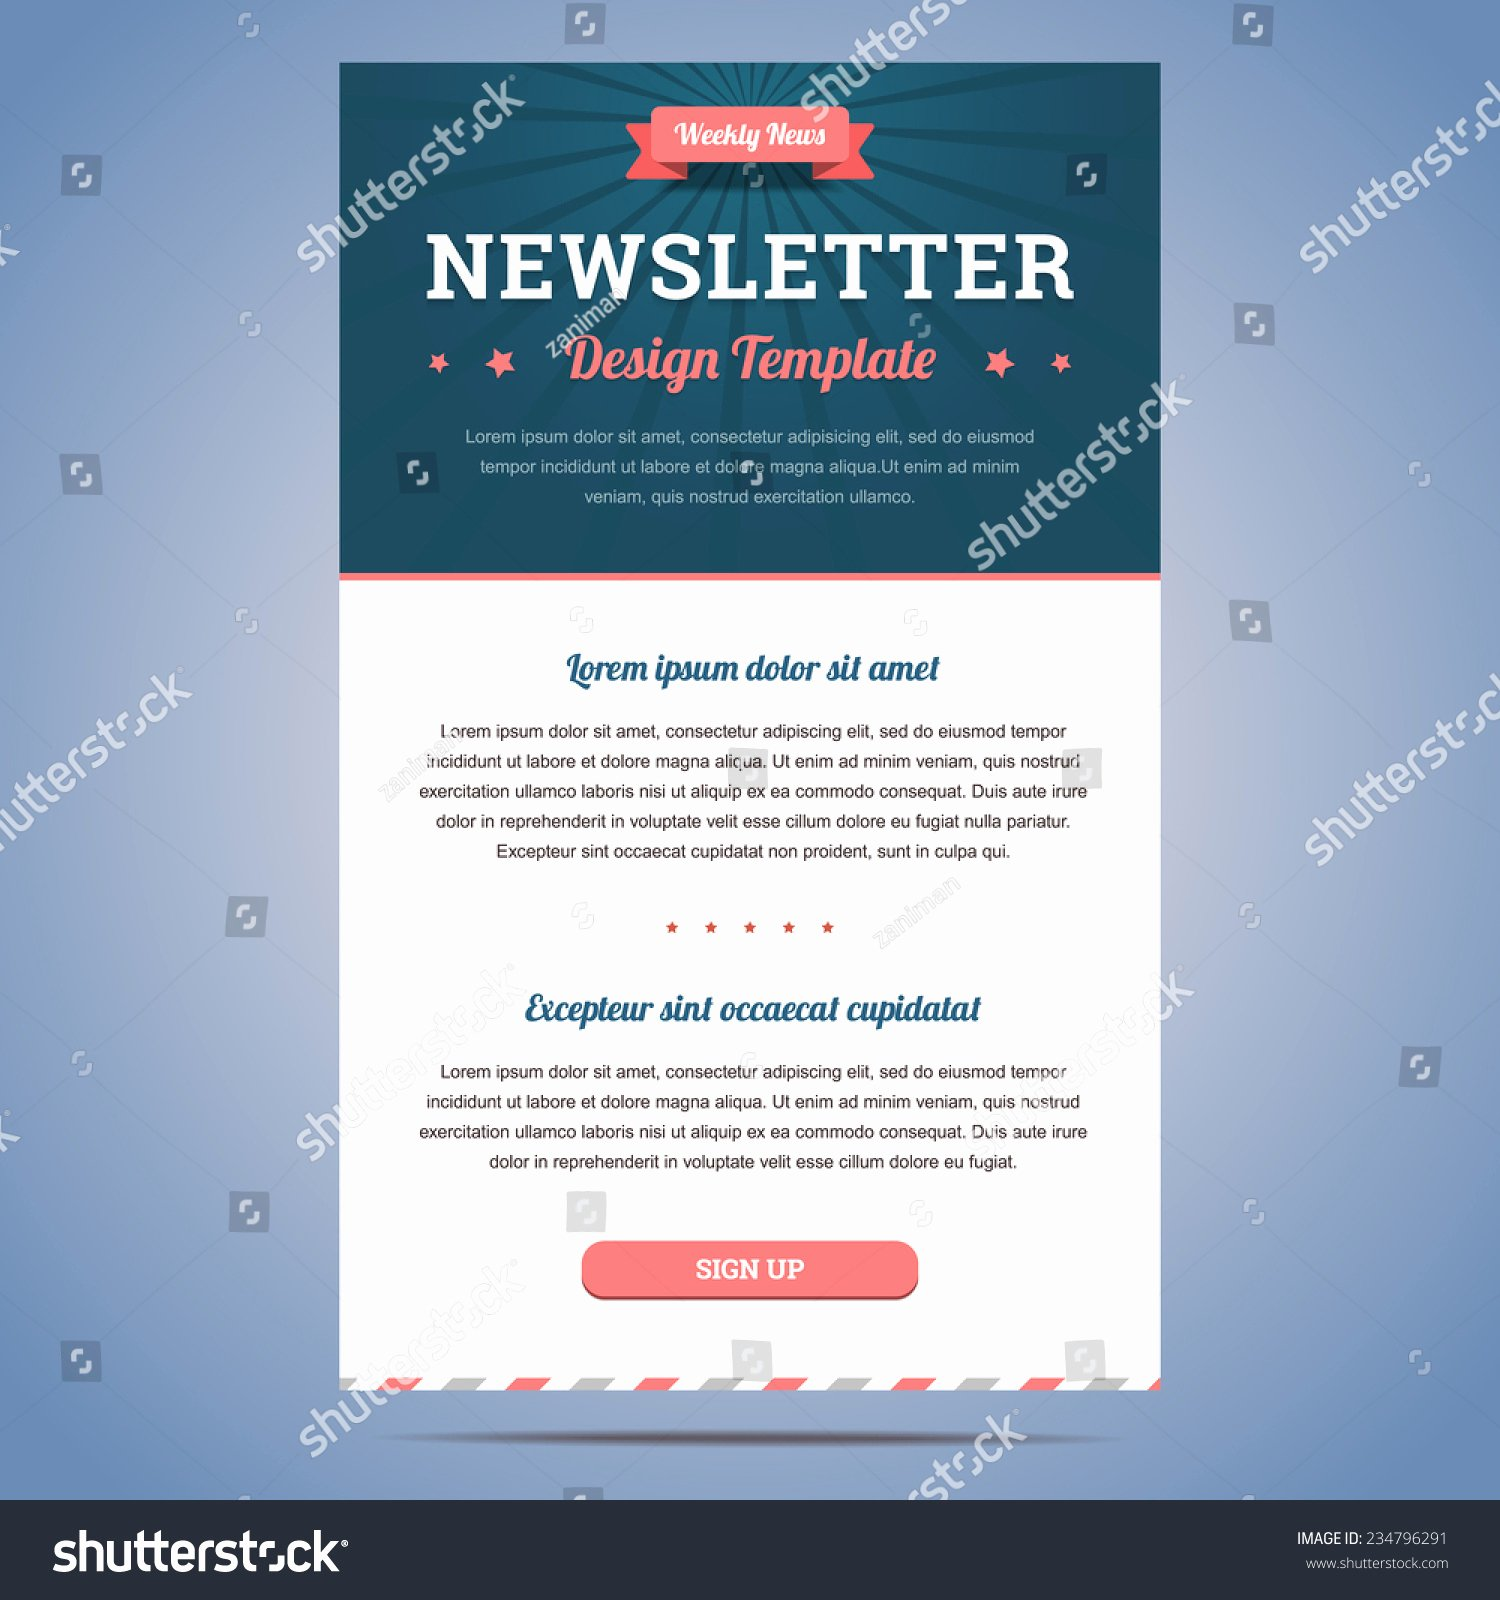 Newsletter Sign Up Template Beautiful Royalty Free Newsletter Design Template for Weekly